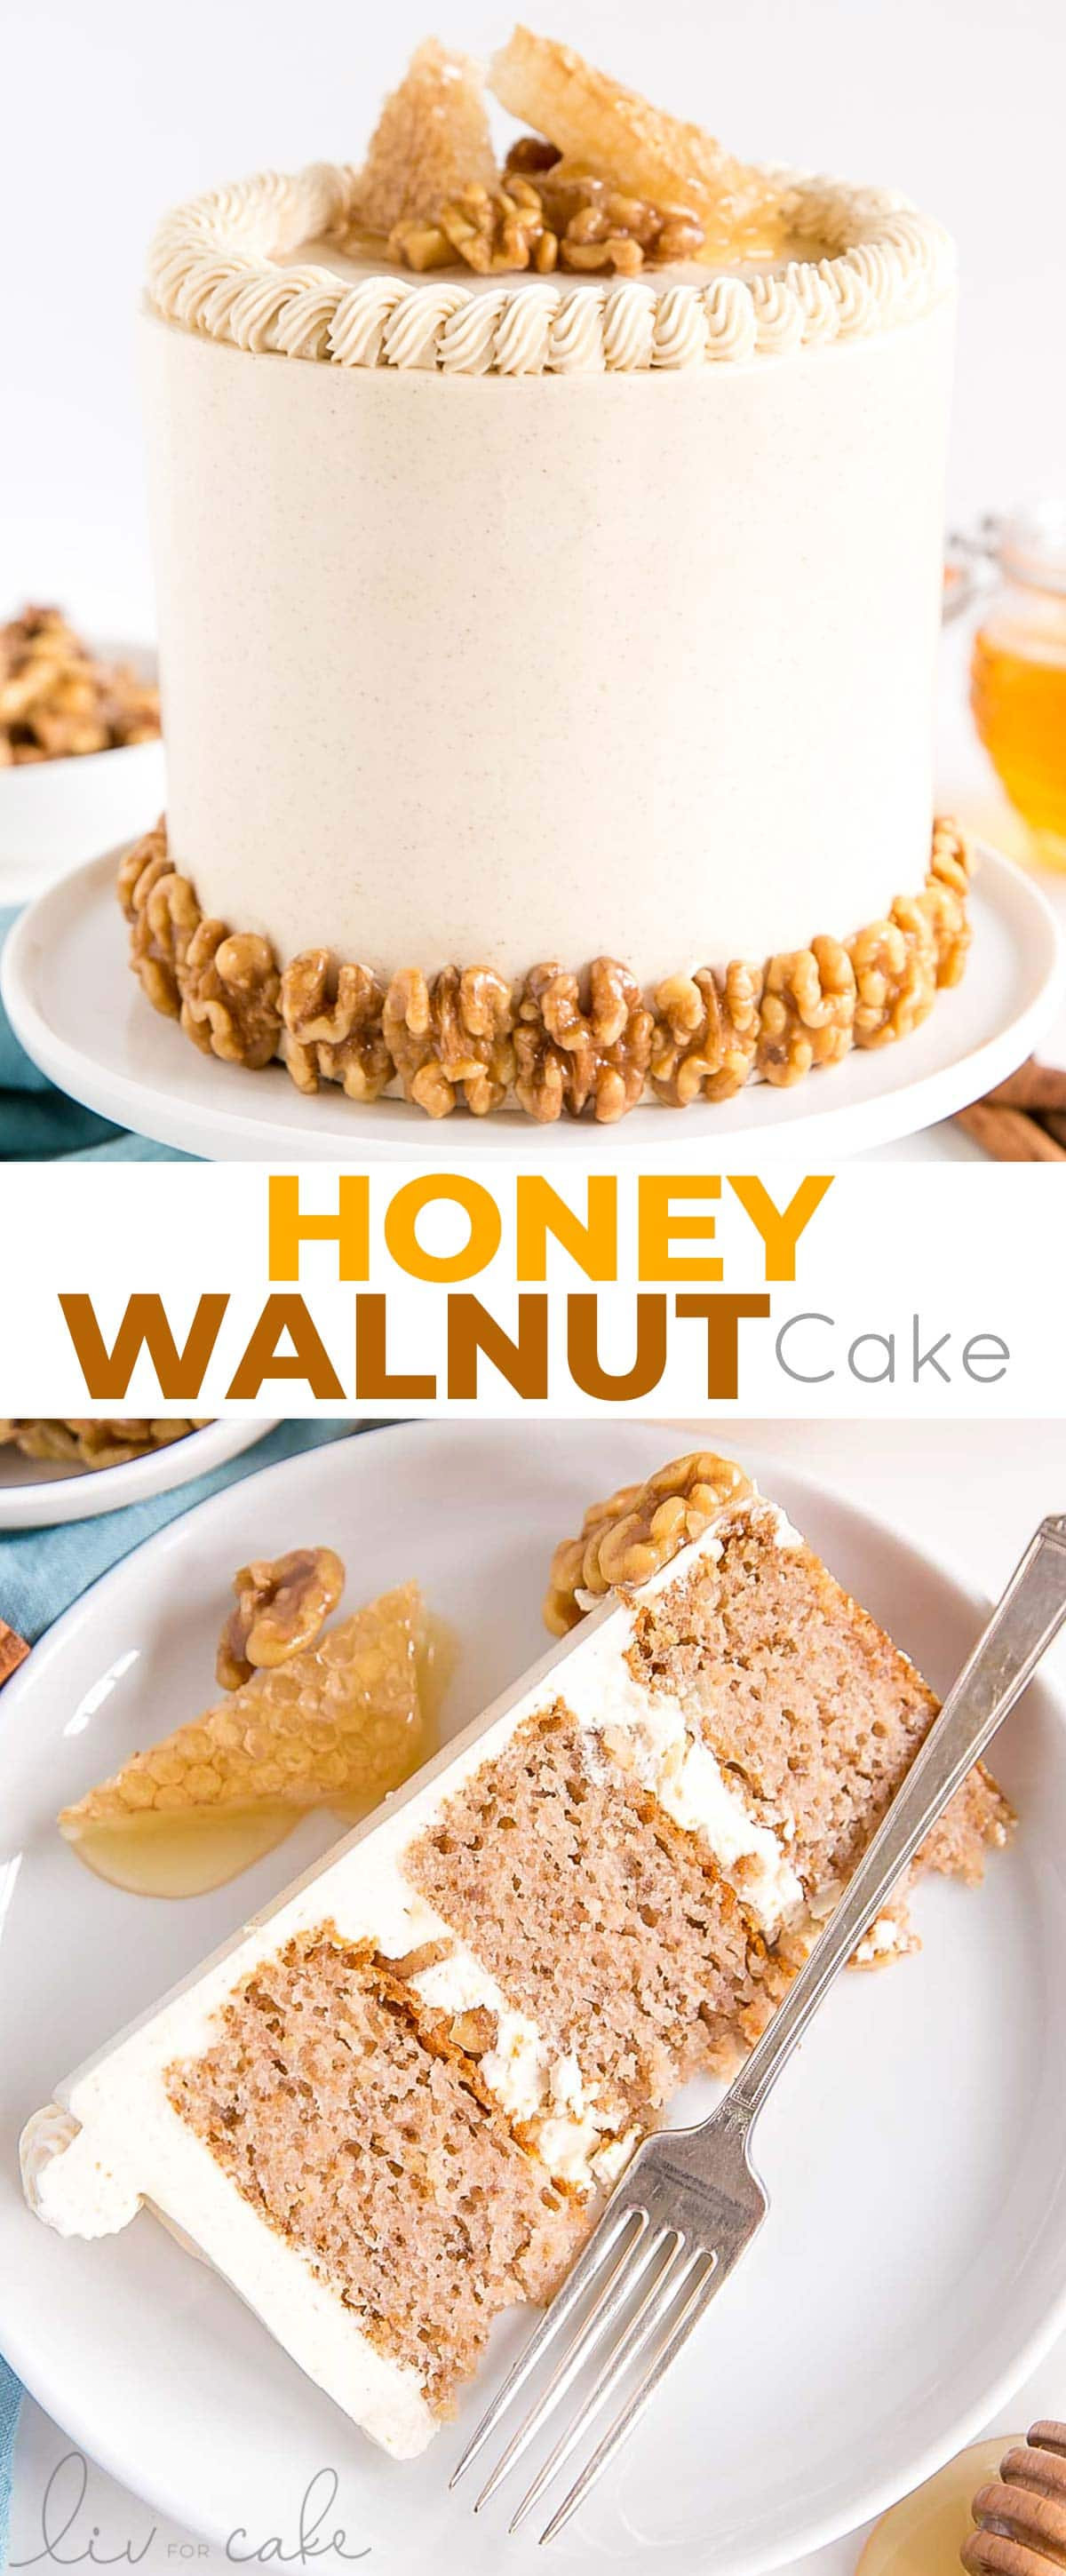 honey walnut cake photo collage